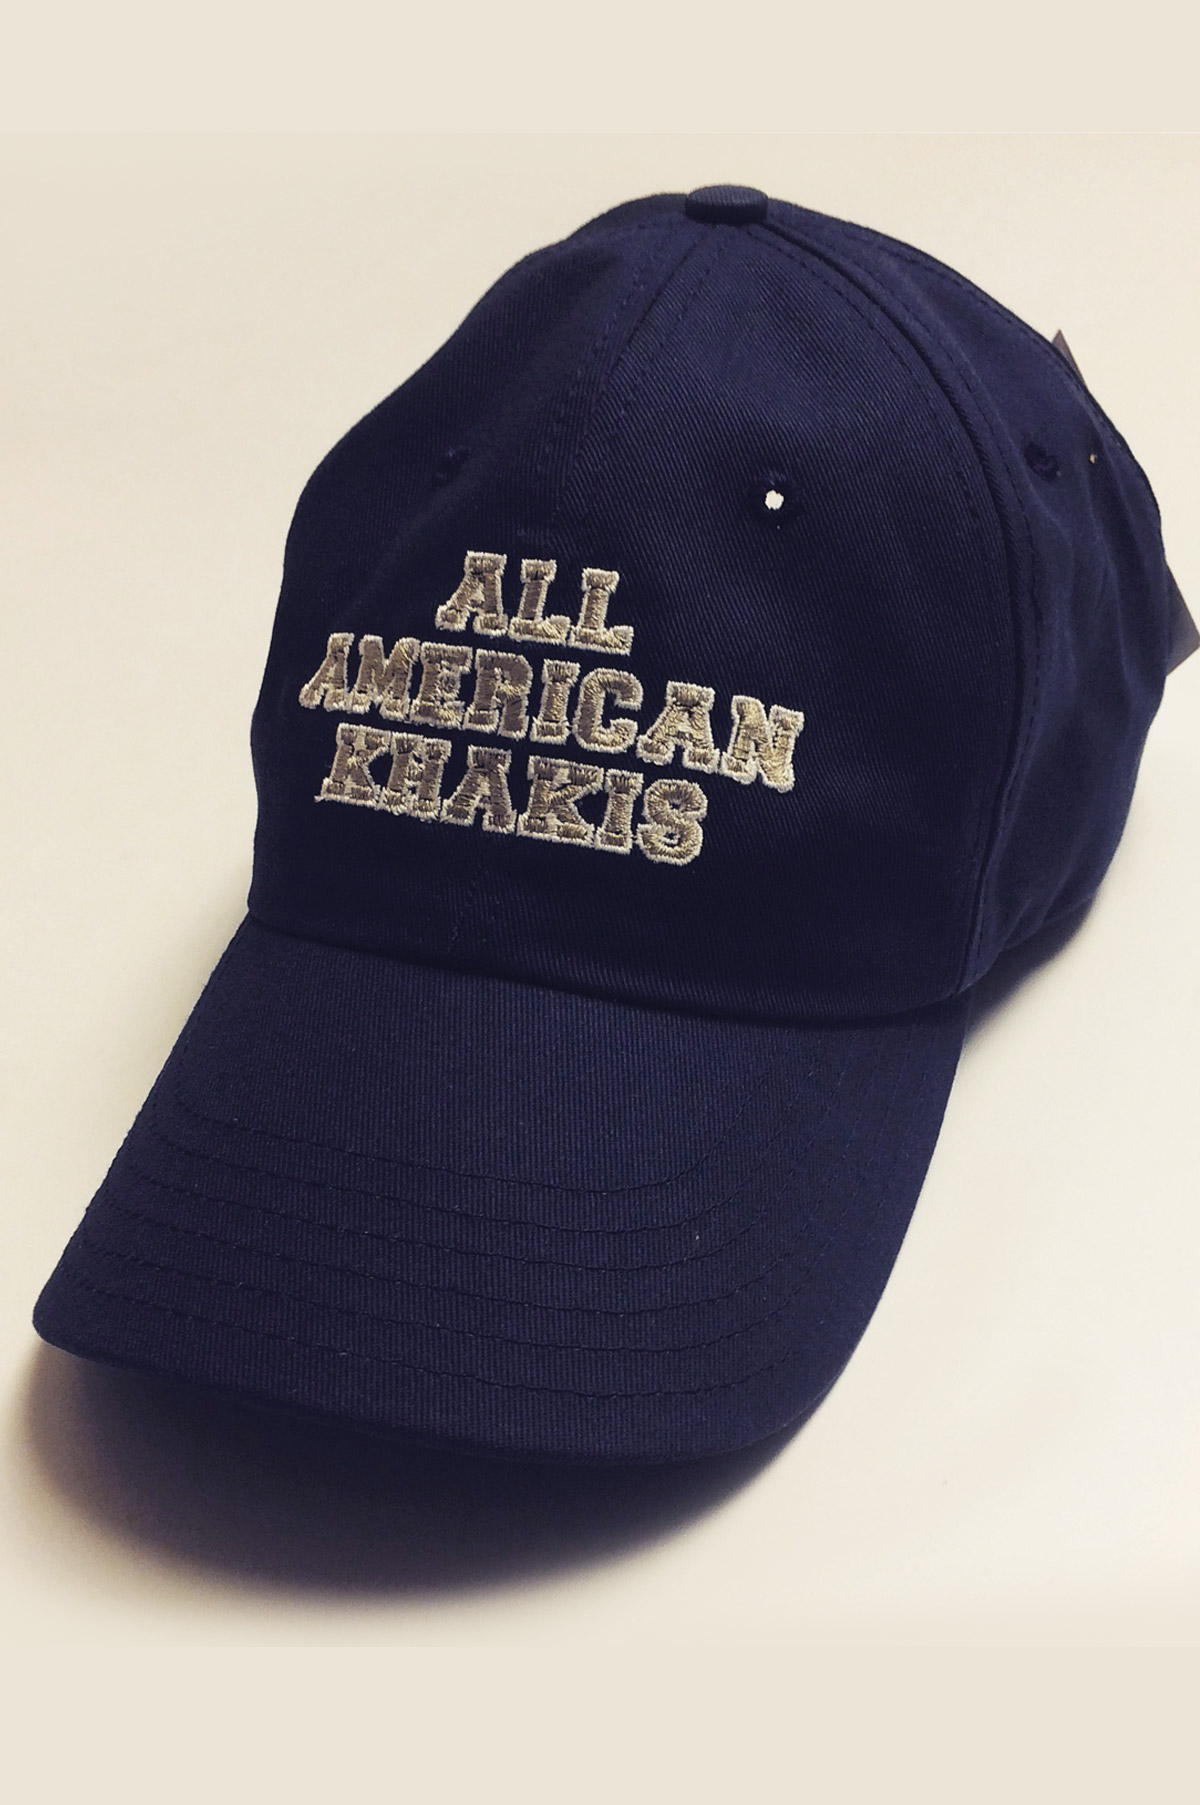 All American Khakis Hat